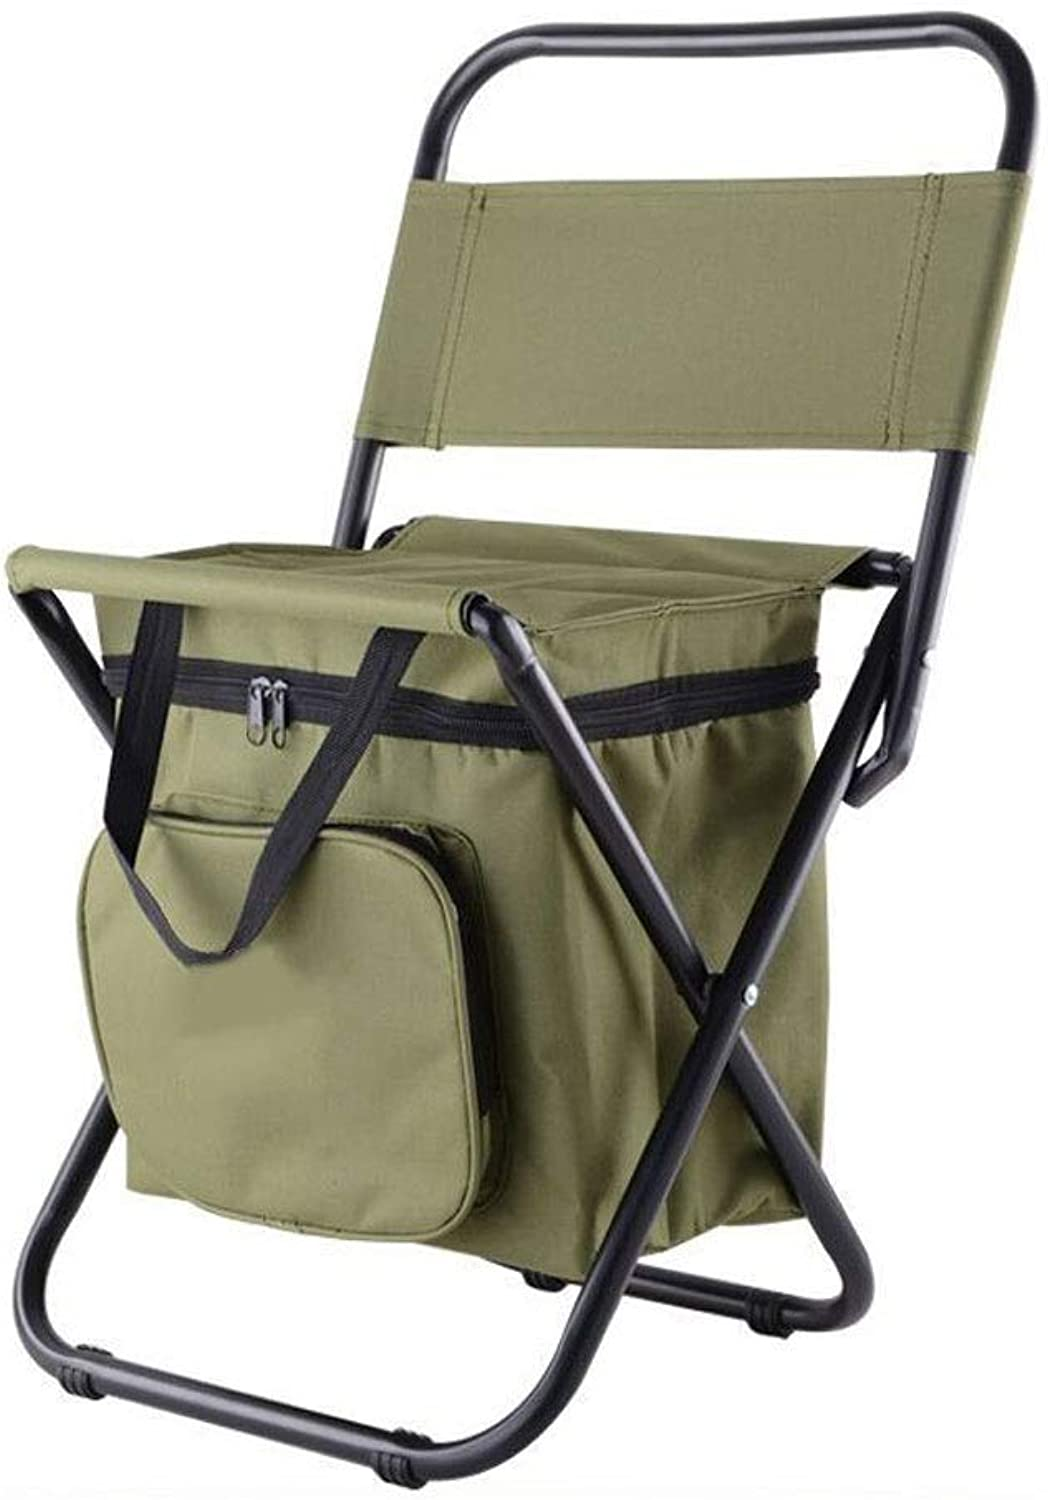 Folding Camping Chair, Portable Chair, Simple Mazar Multifunctional Insulation Ice Bag Stool